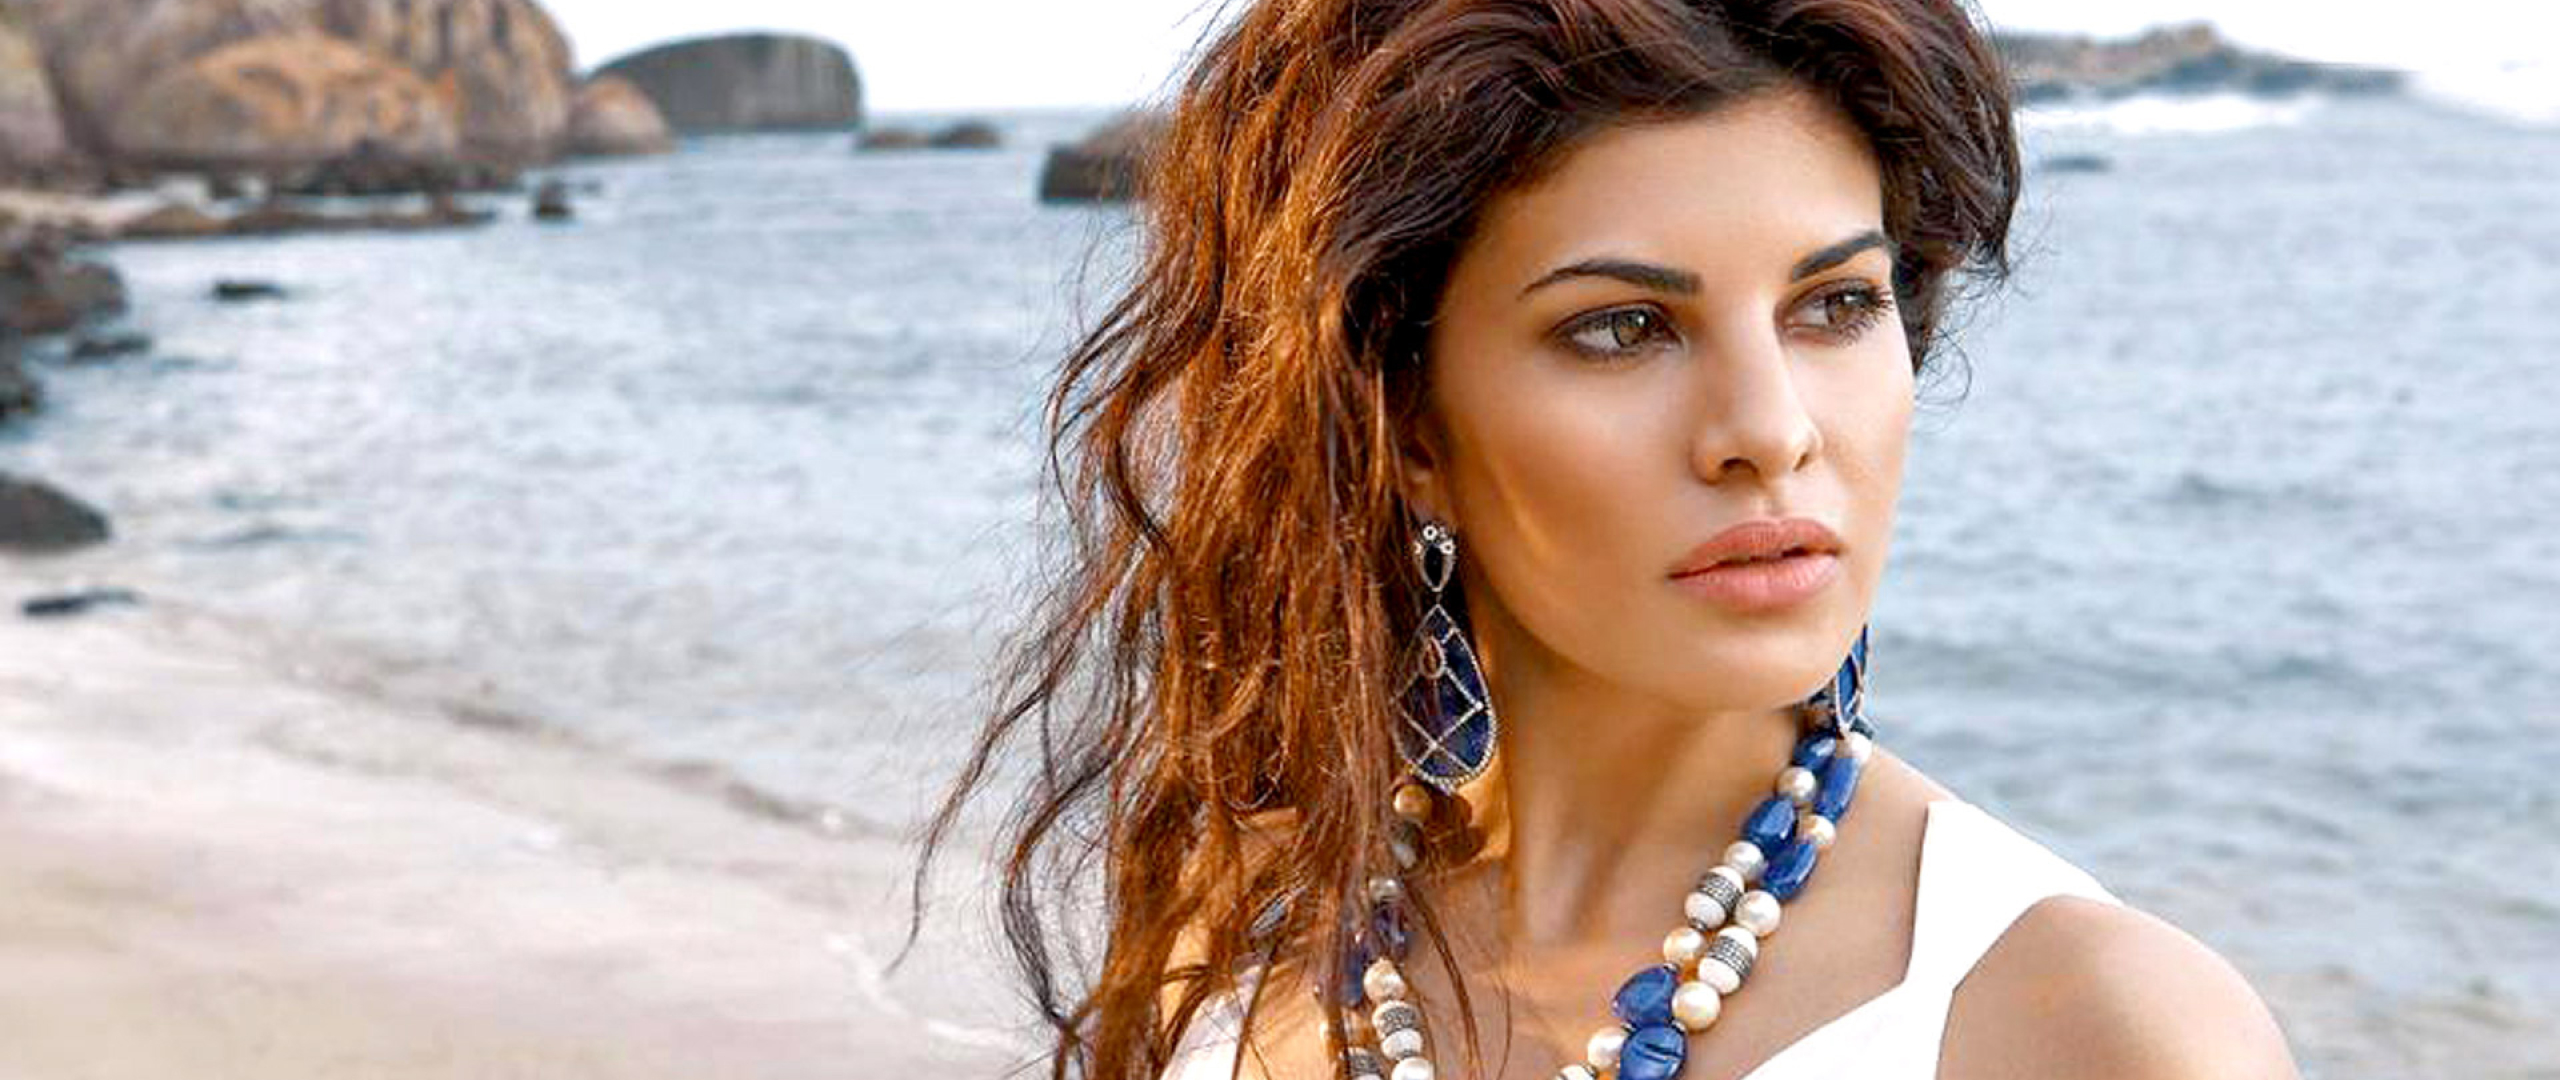 Free Download Full Hd Wallpaper Jacqueline Fernandez: Jacqueline Fernandez Latest Beach Photoshoot, Full HD